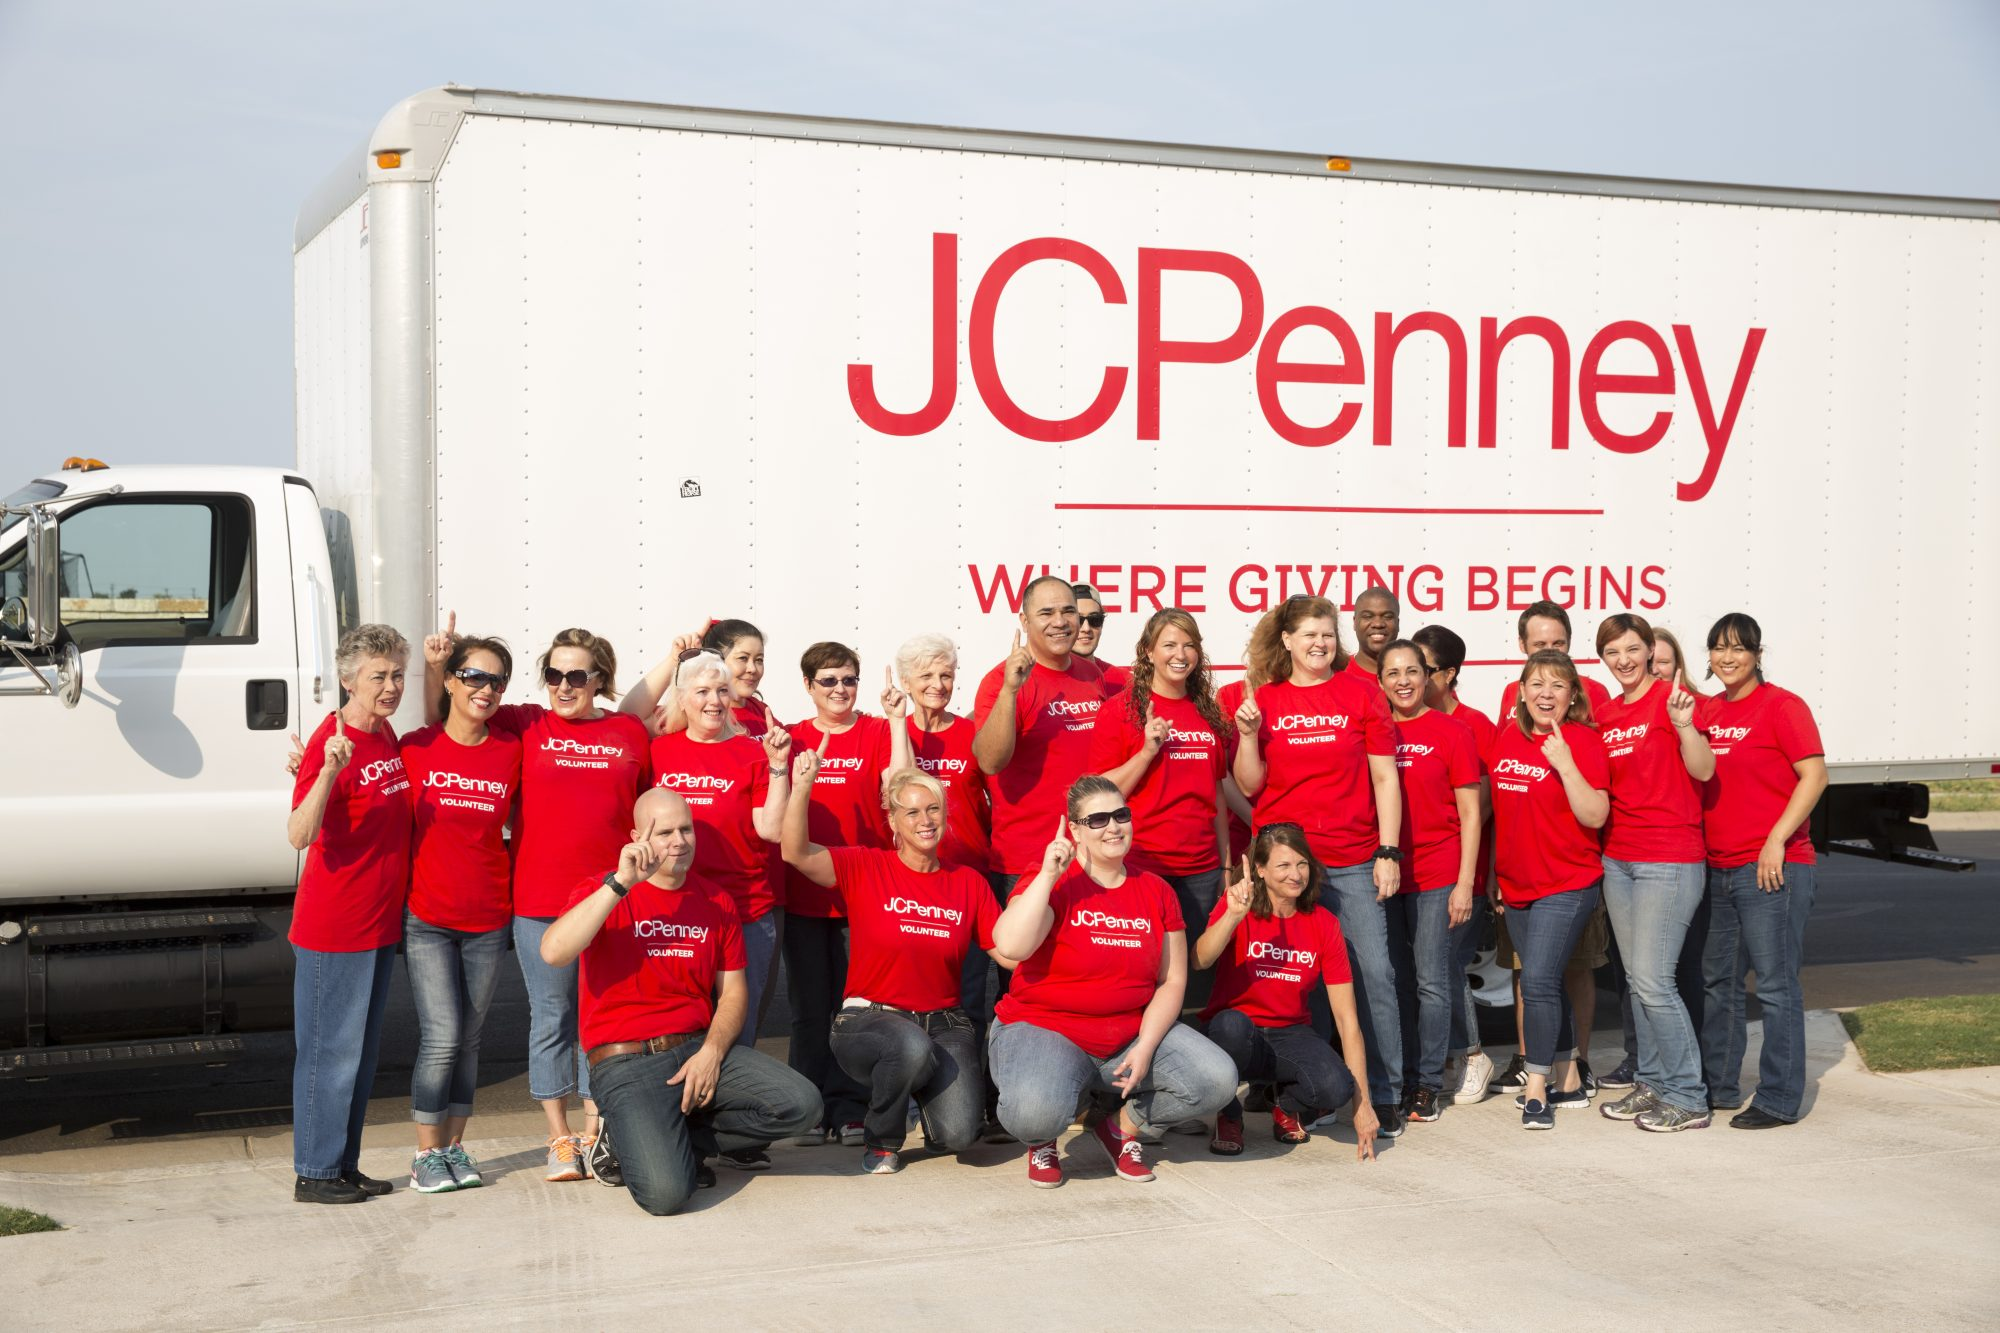 The JCPenney Team